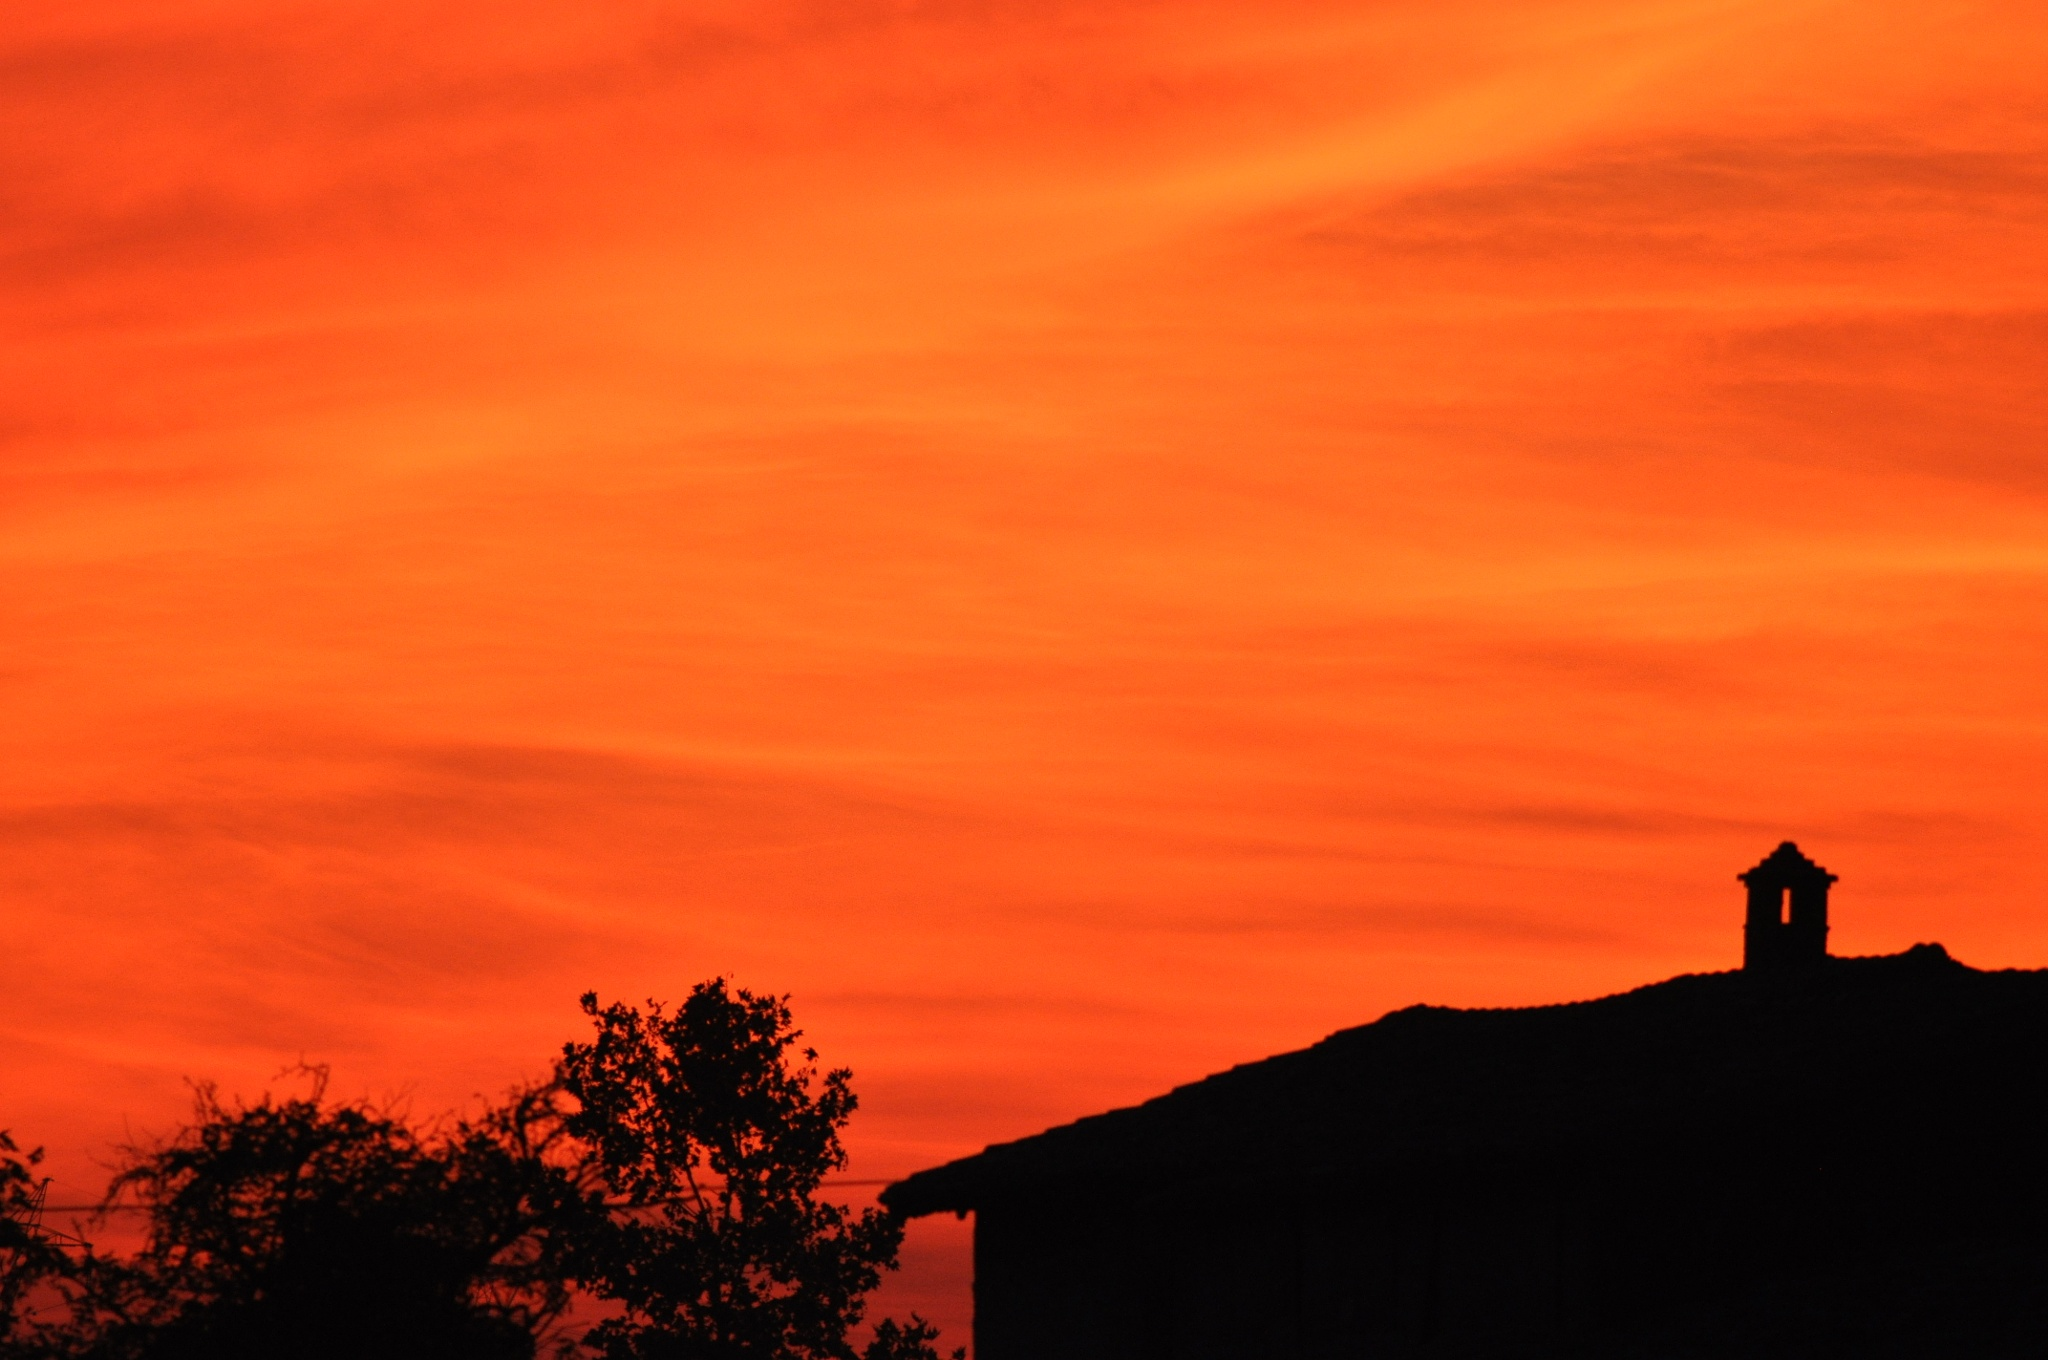 SUNSET COLOURS by filippo.true